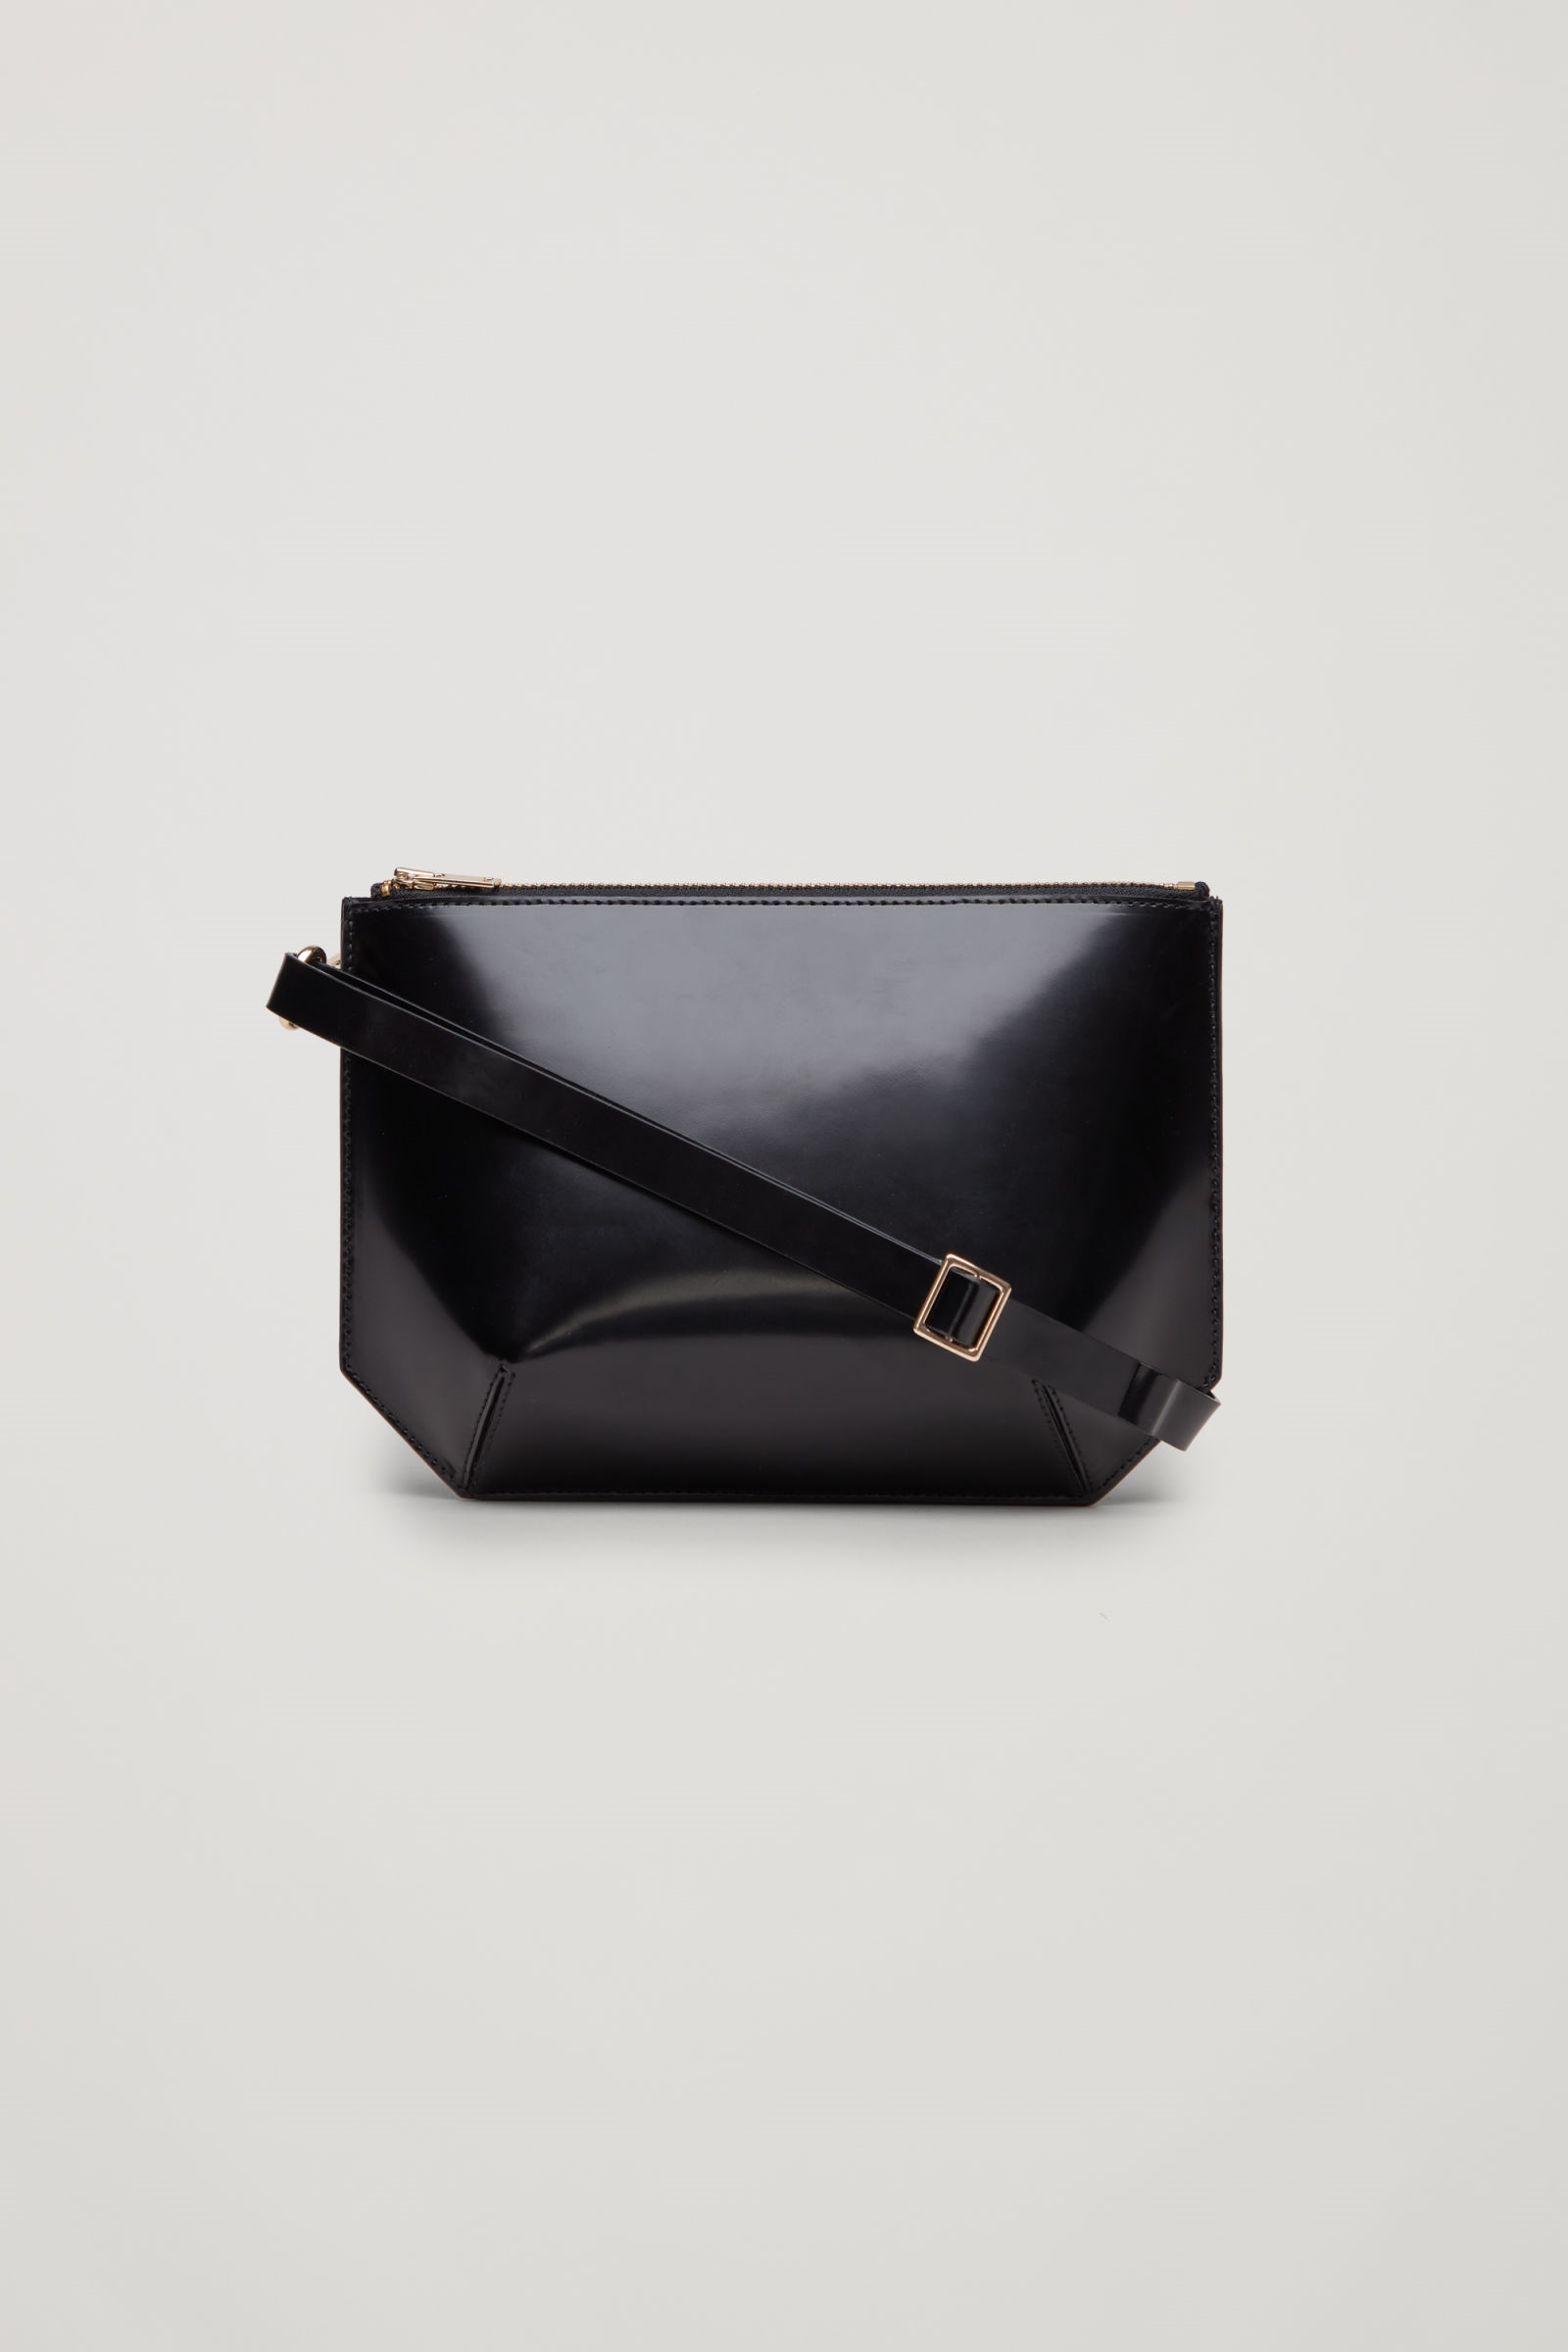 867a42ad242 COS   Multifunctional leather bag   COS   Accessories en 2019 ...